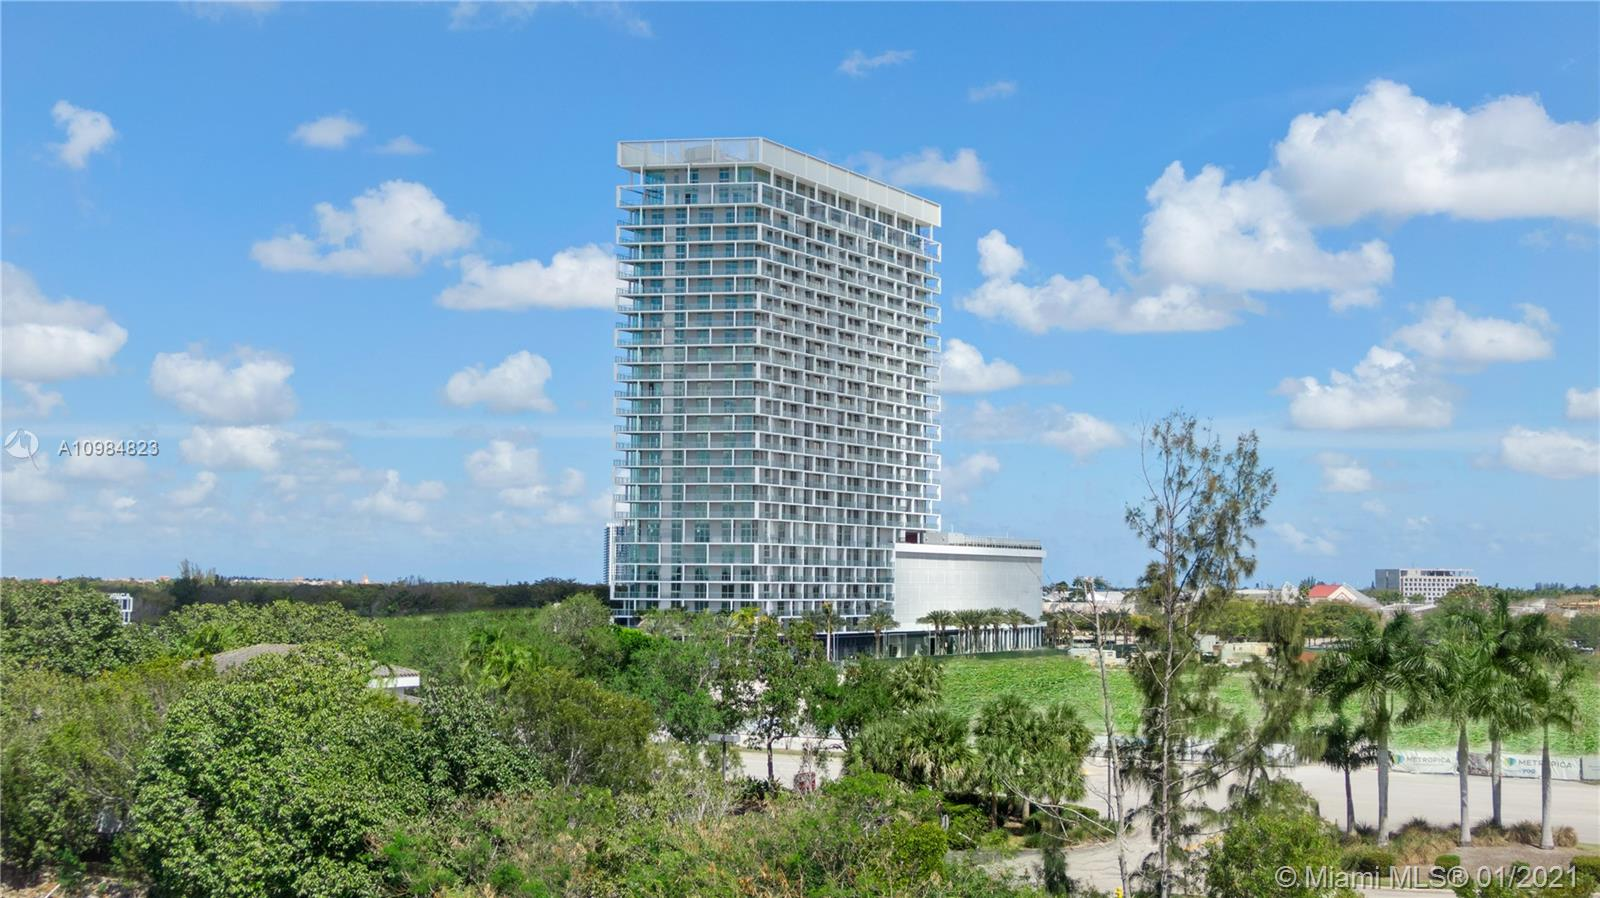 Metropica One #1408 - 2000 Metropica Way #1408, Sunrise, FL 33323